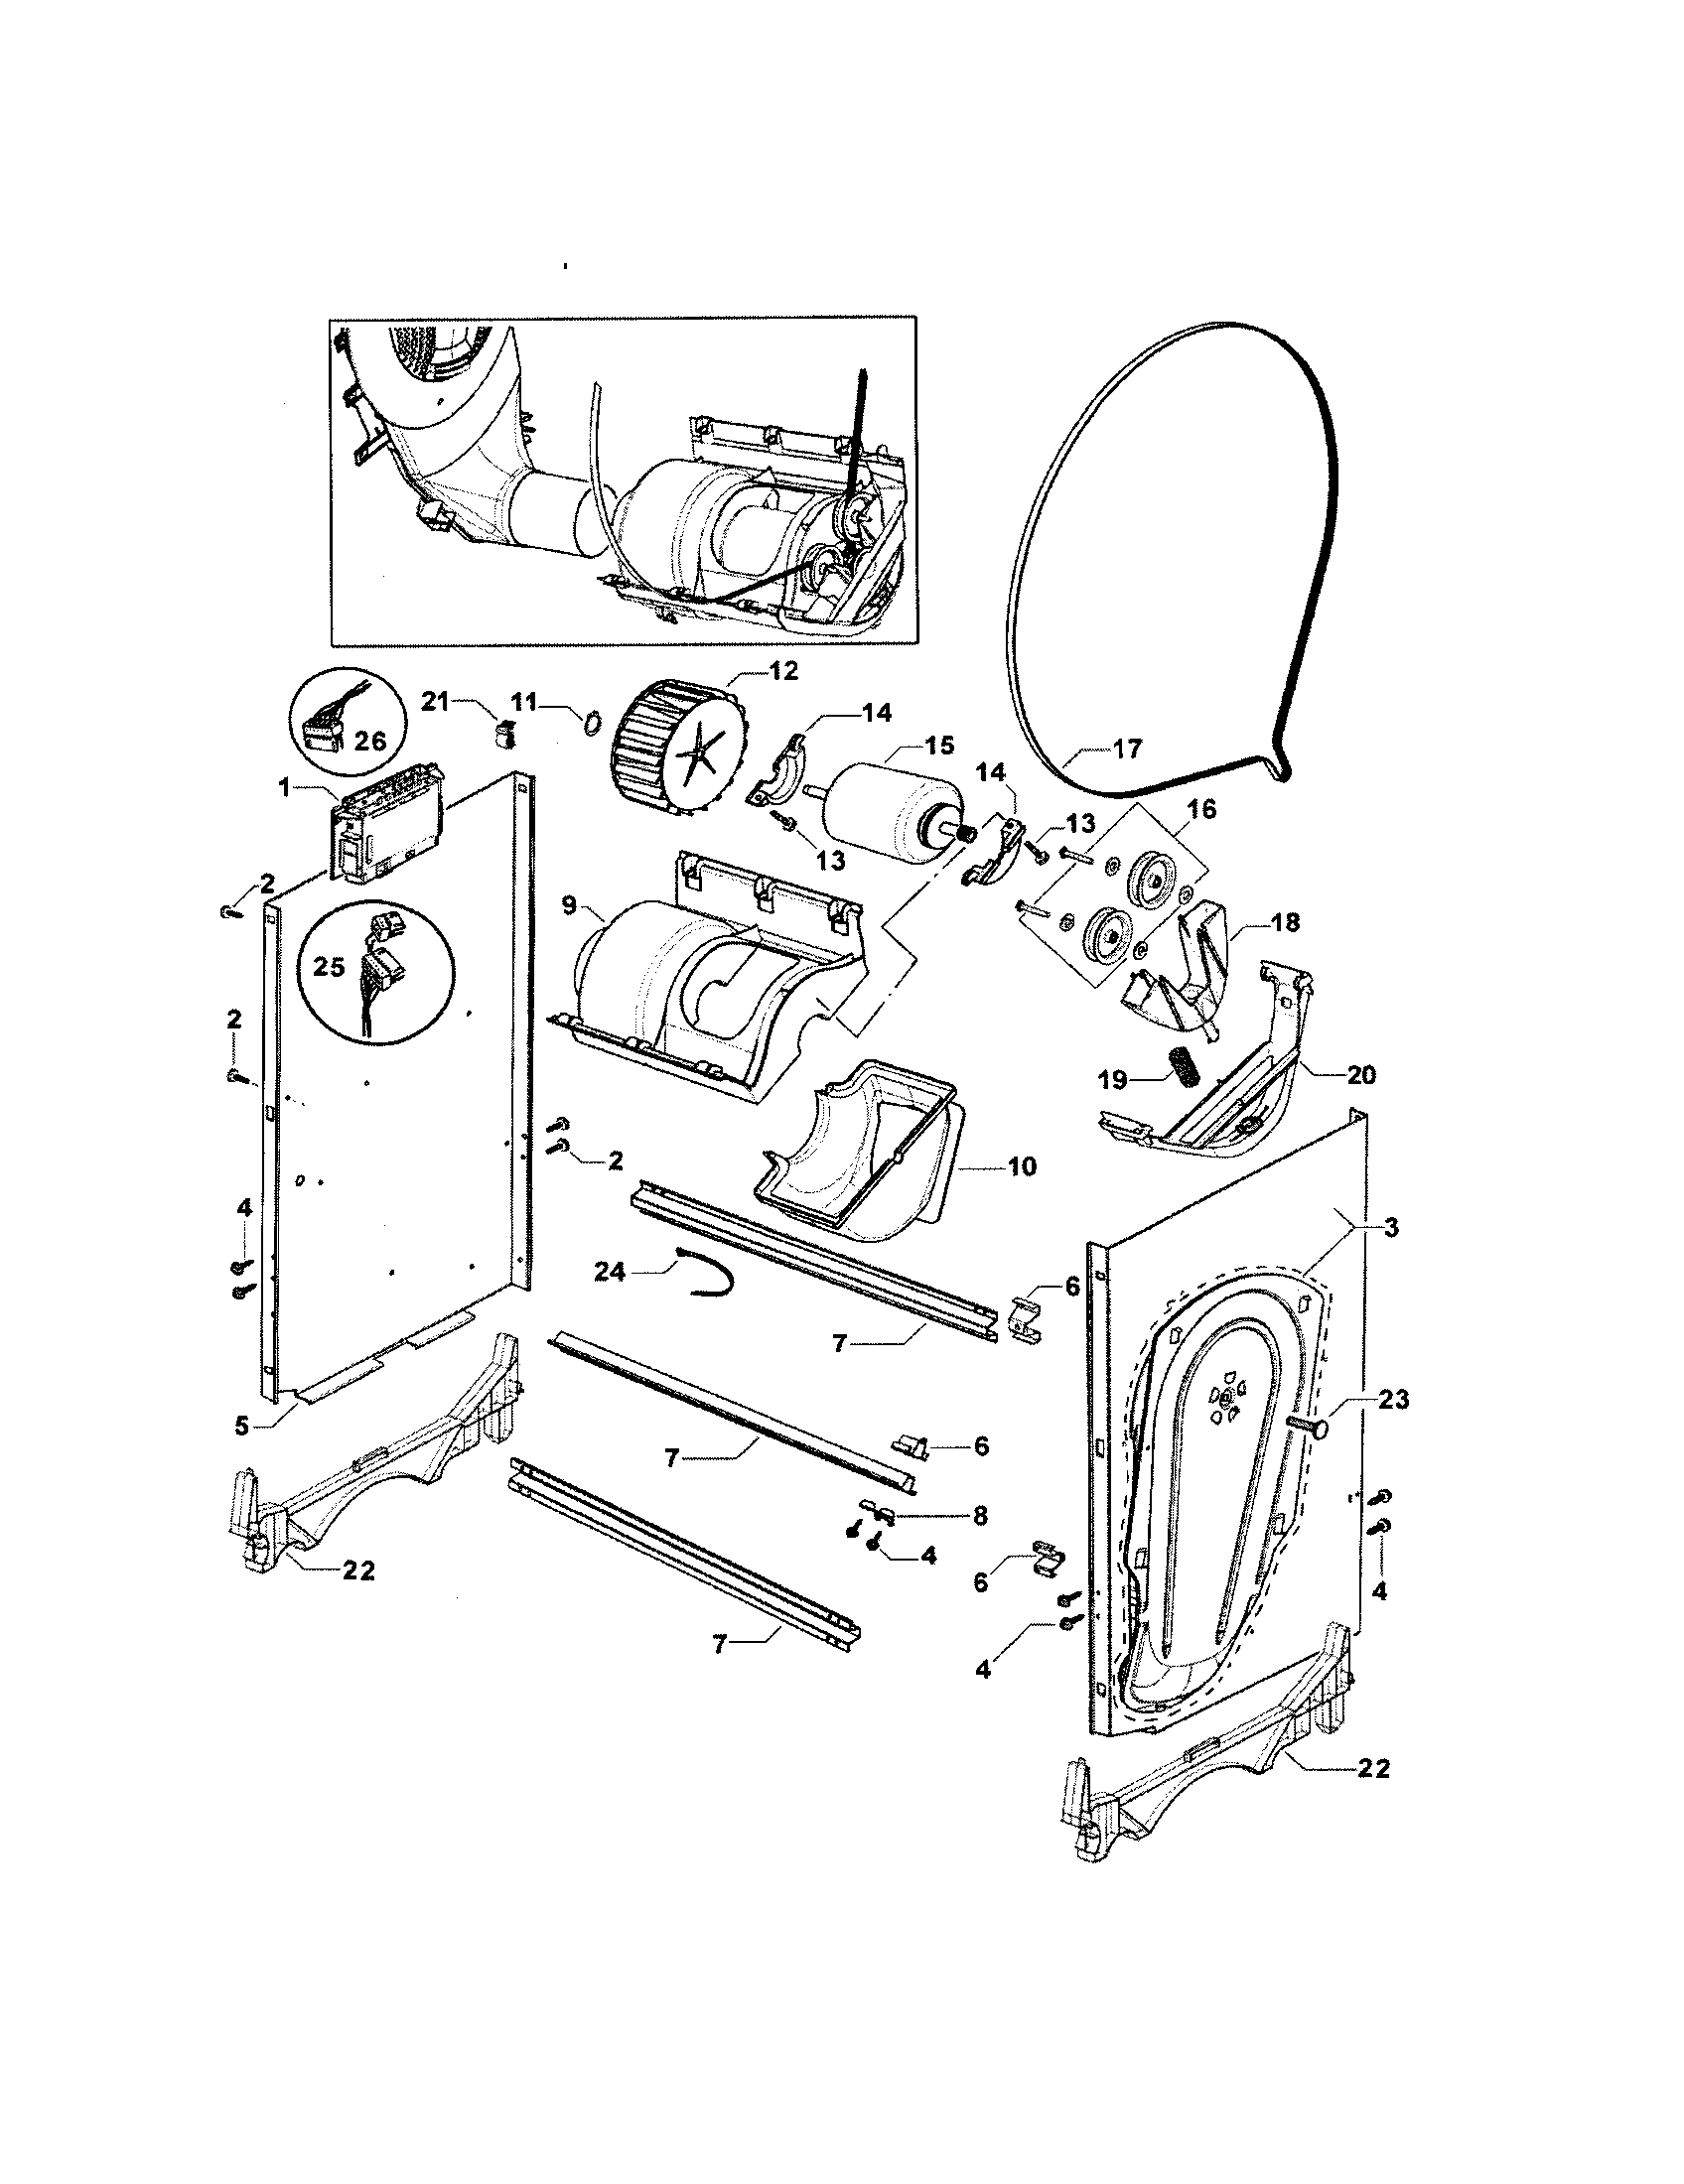 hight resolution of fisher paykel washer wiring diagram